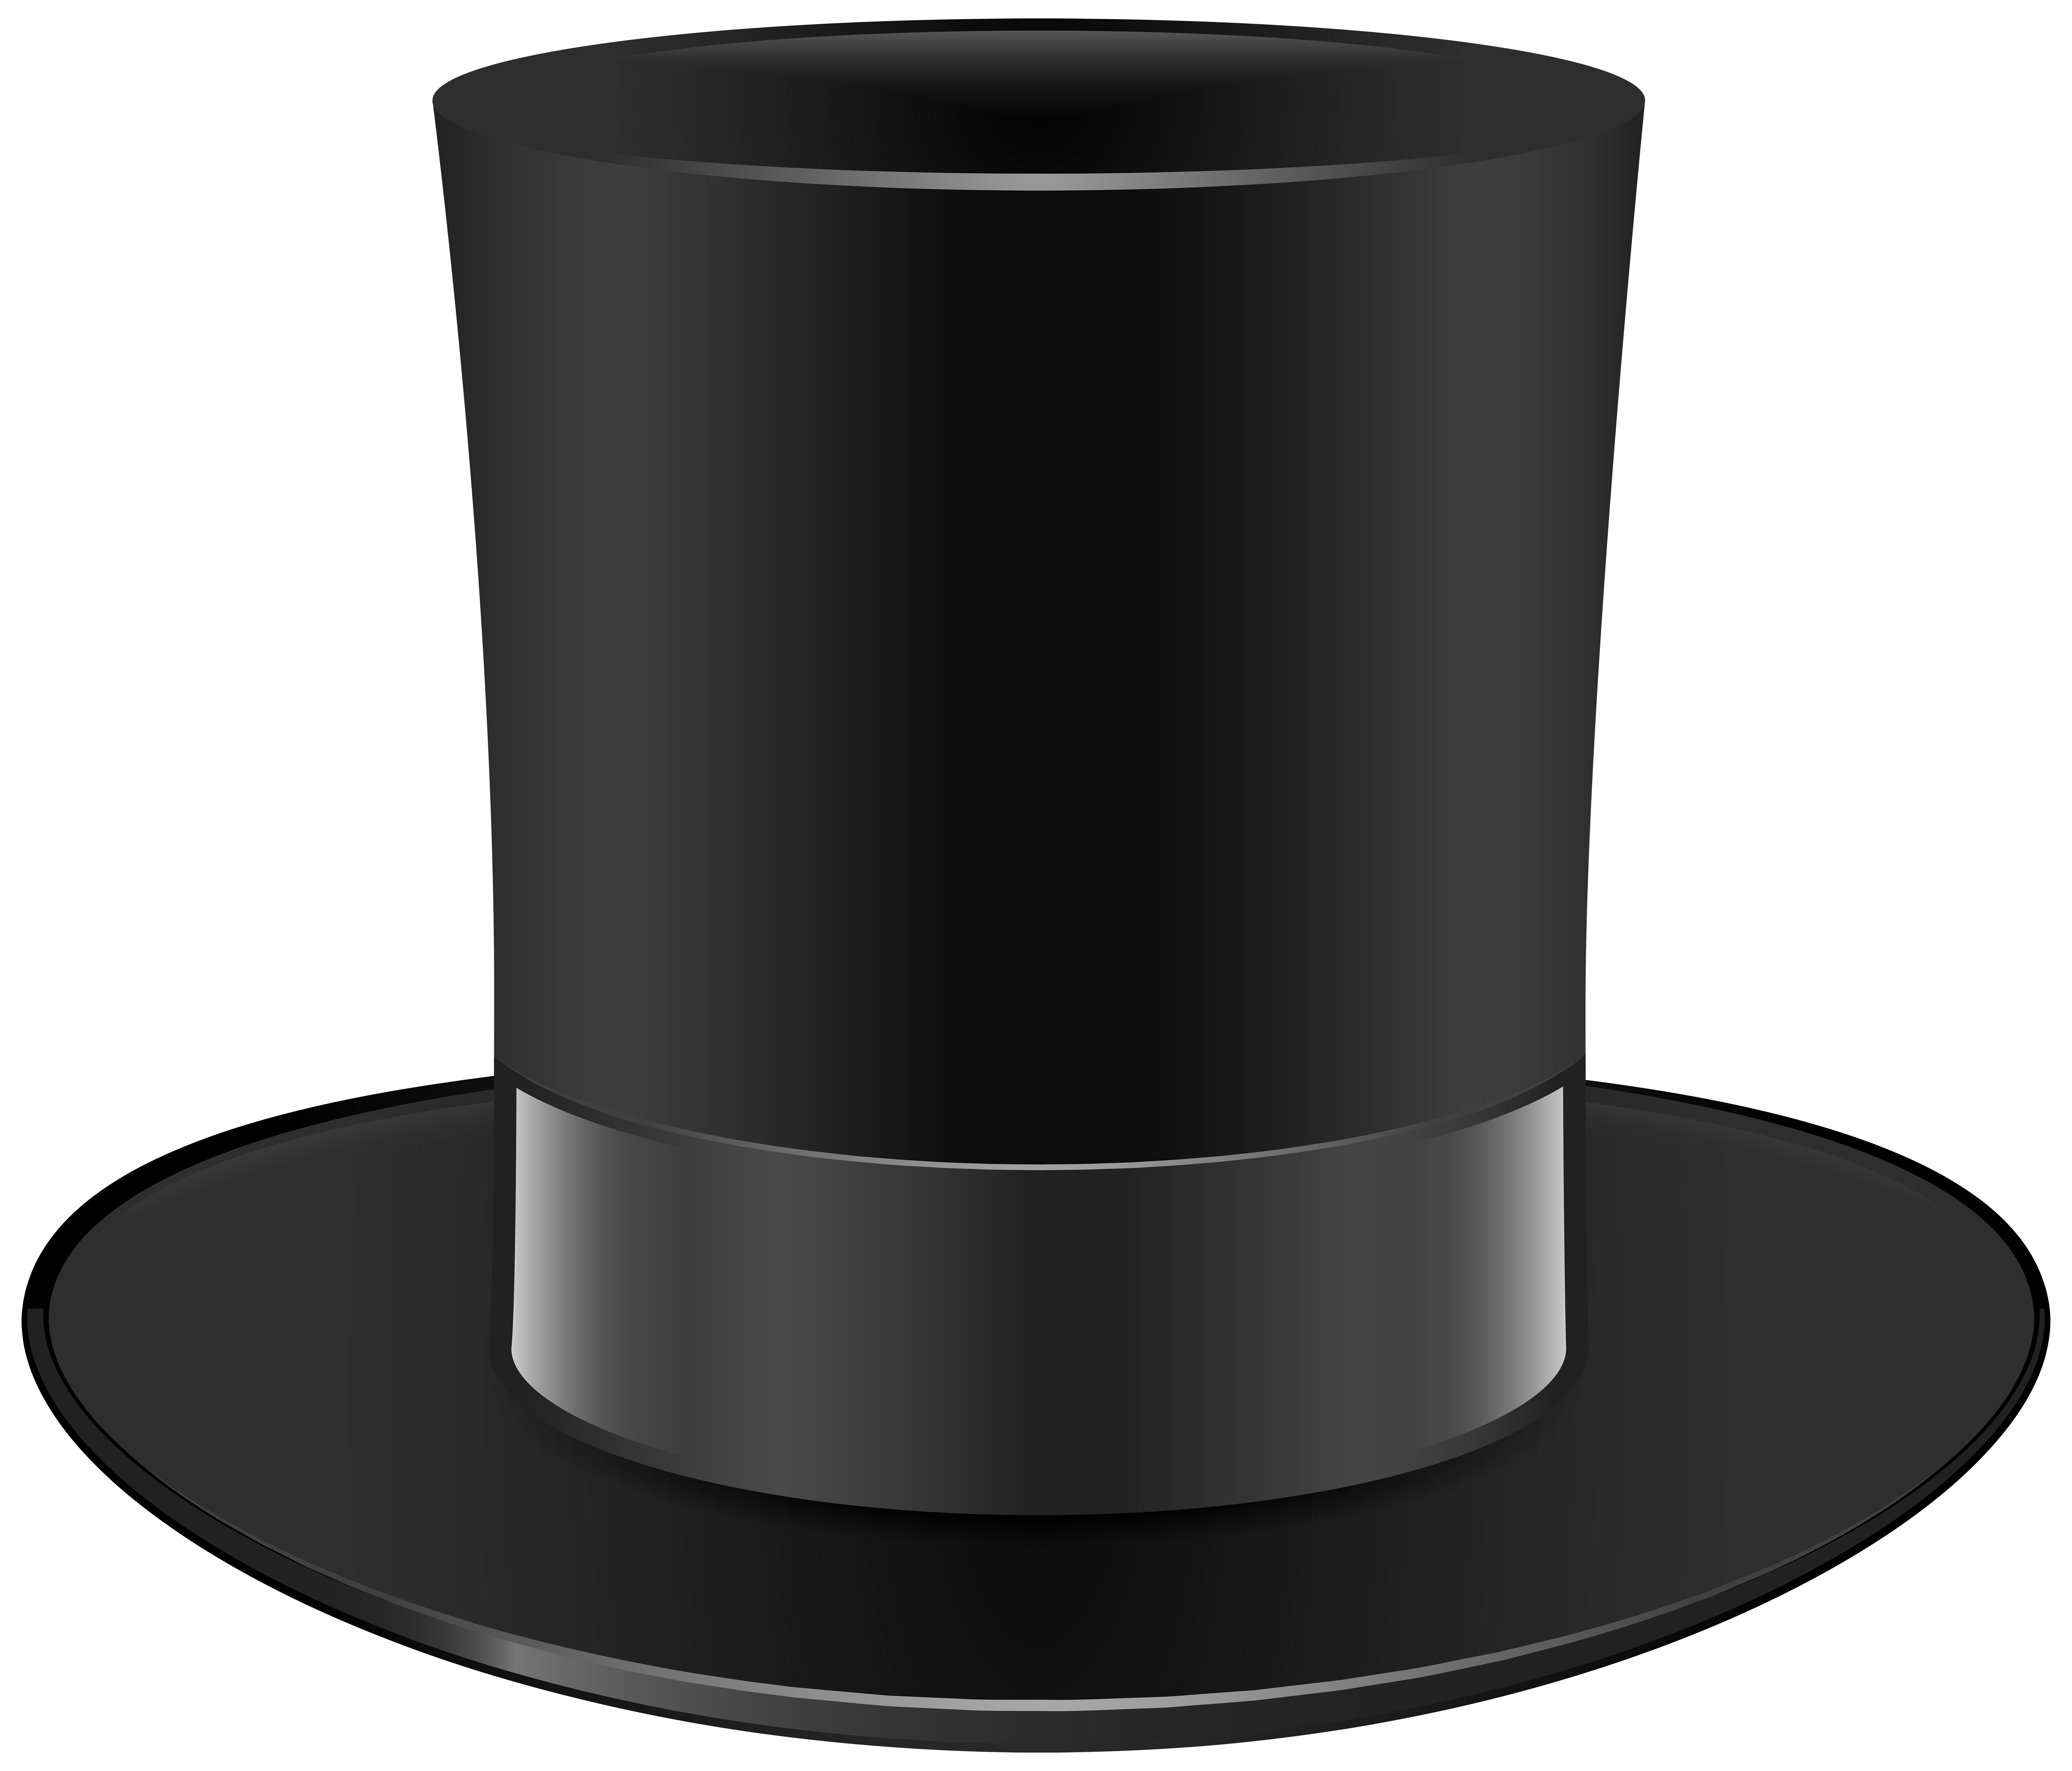 Top hat money clipart svg royalty free stock Black Top Hat PNG Clip Art - Best WEB Clipart svg royalty free stock